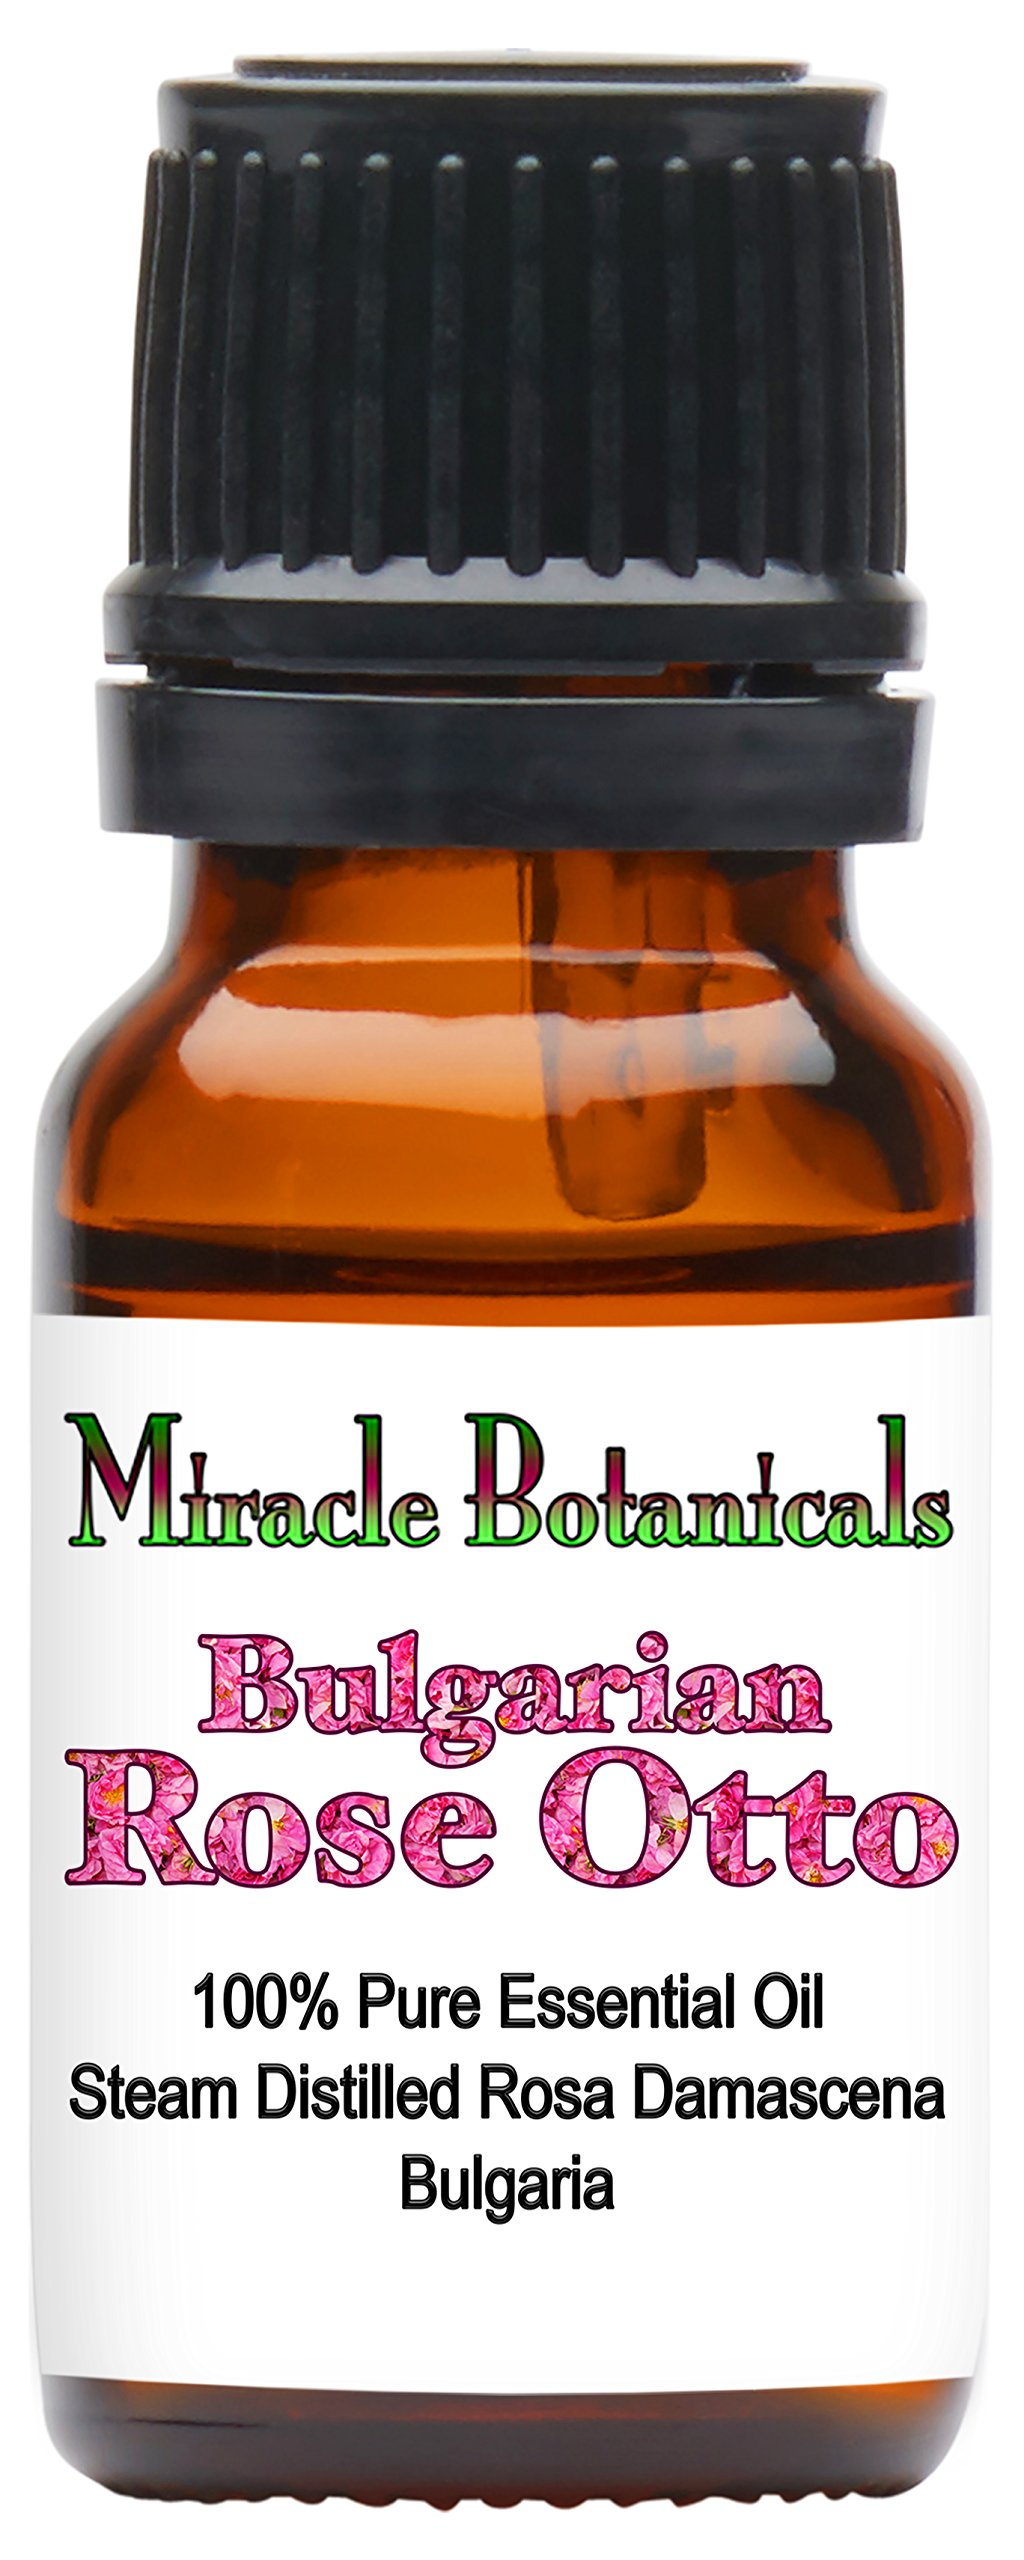 Miracle Botanicals Bulgarian Rose Otto Essential Oil - 100% Pure Rosa Damascena - 2.5ml, 5ml, and 10ml Sizes - Therapeutic Grade - 10ml